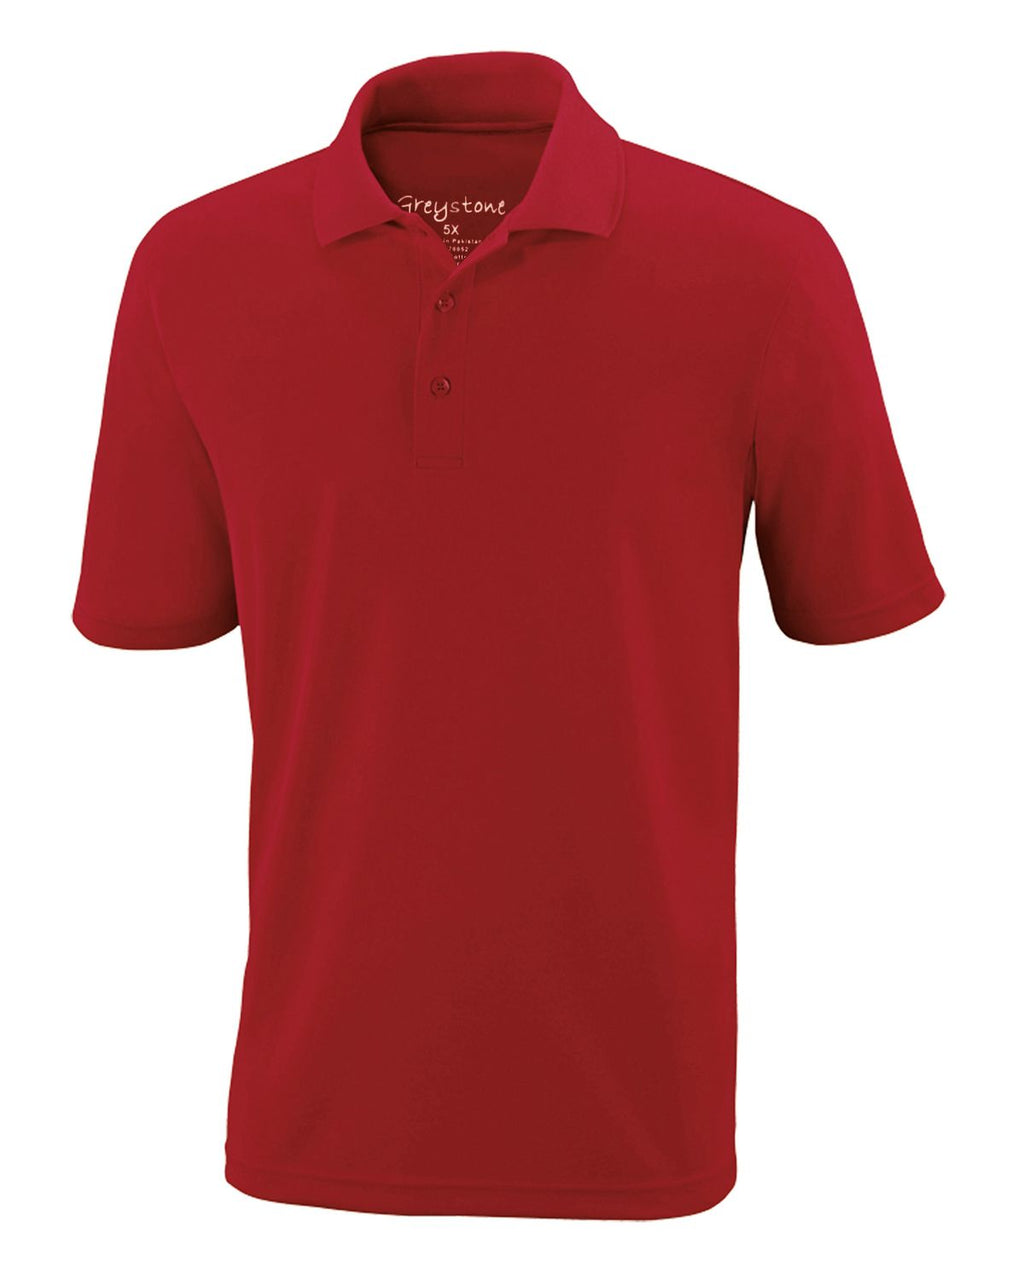 Polo Shirts in larger sizes